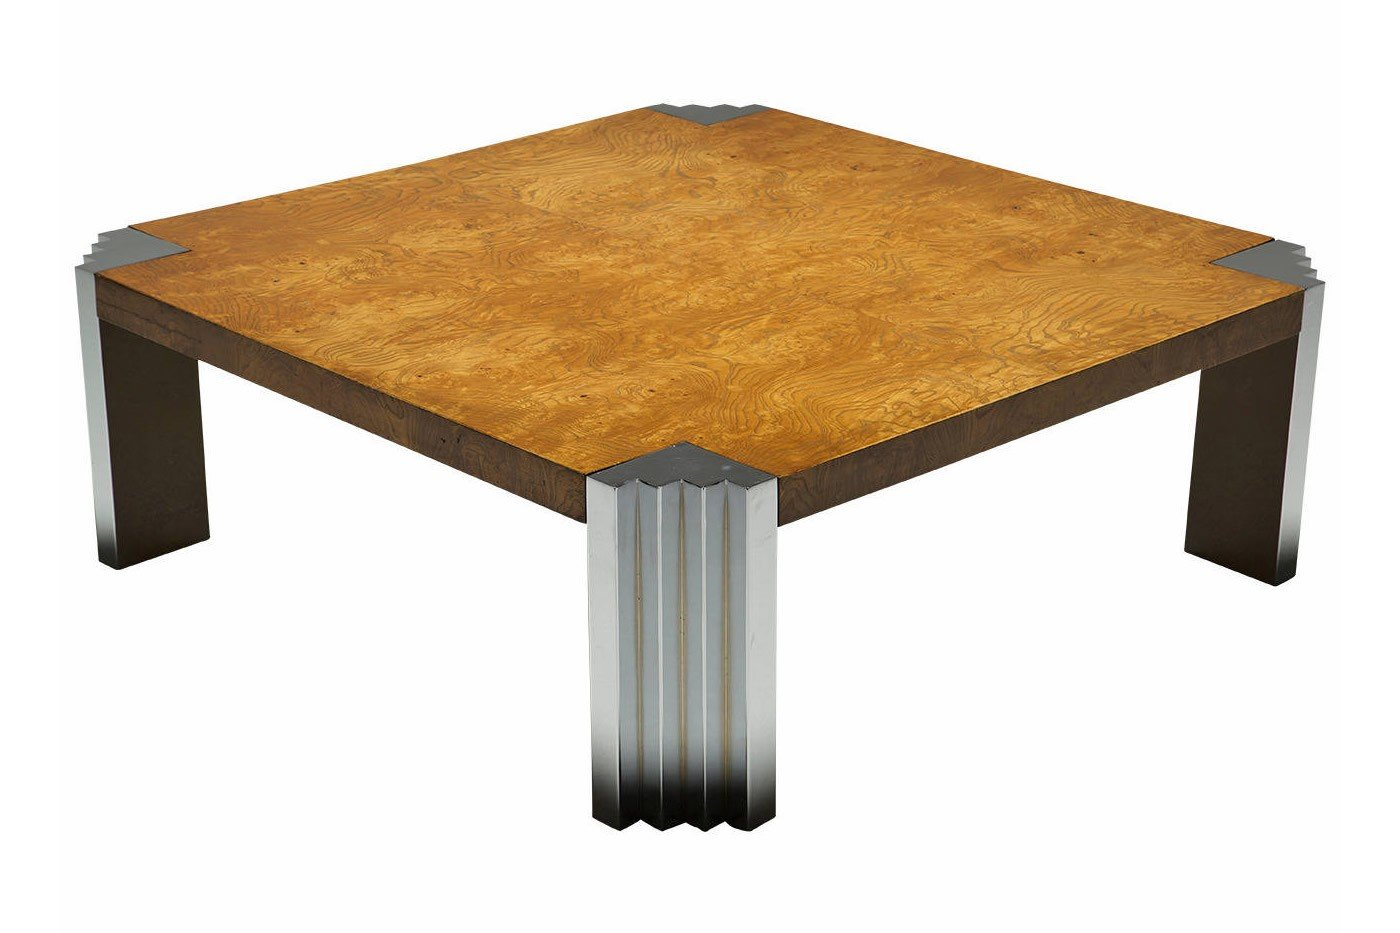 Burr Walnut And Chrome Square Coffee Table For Sale At Pamono